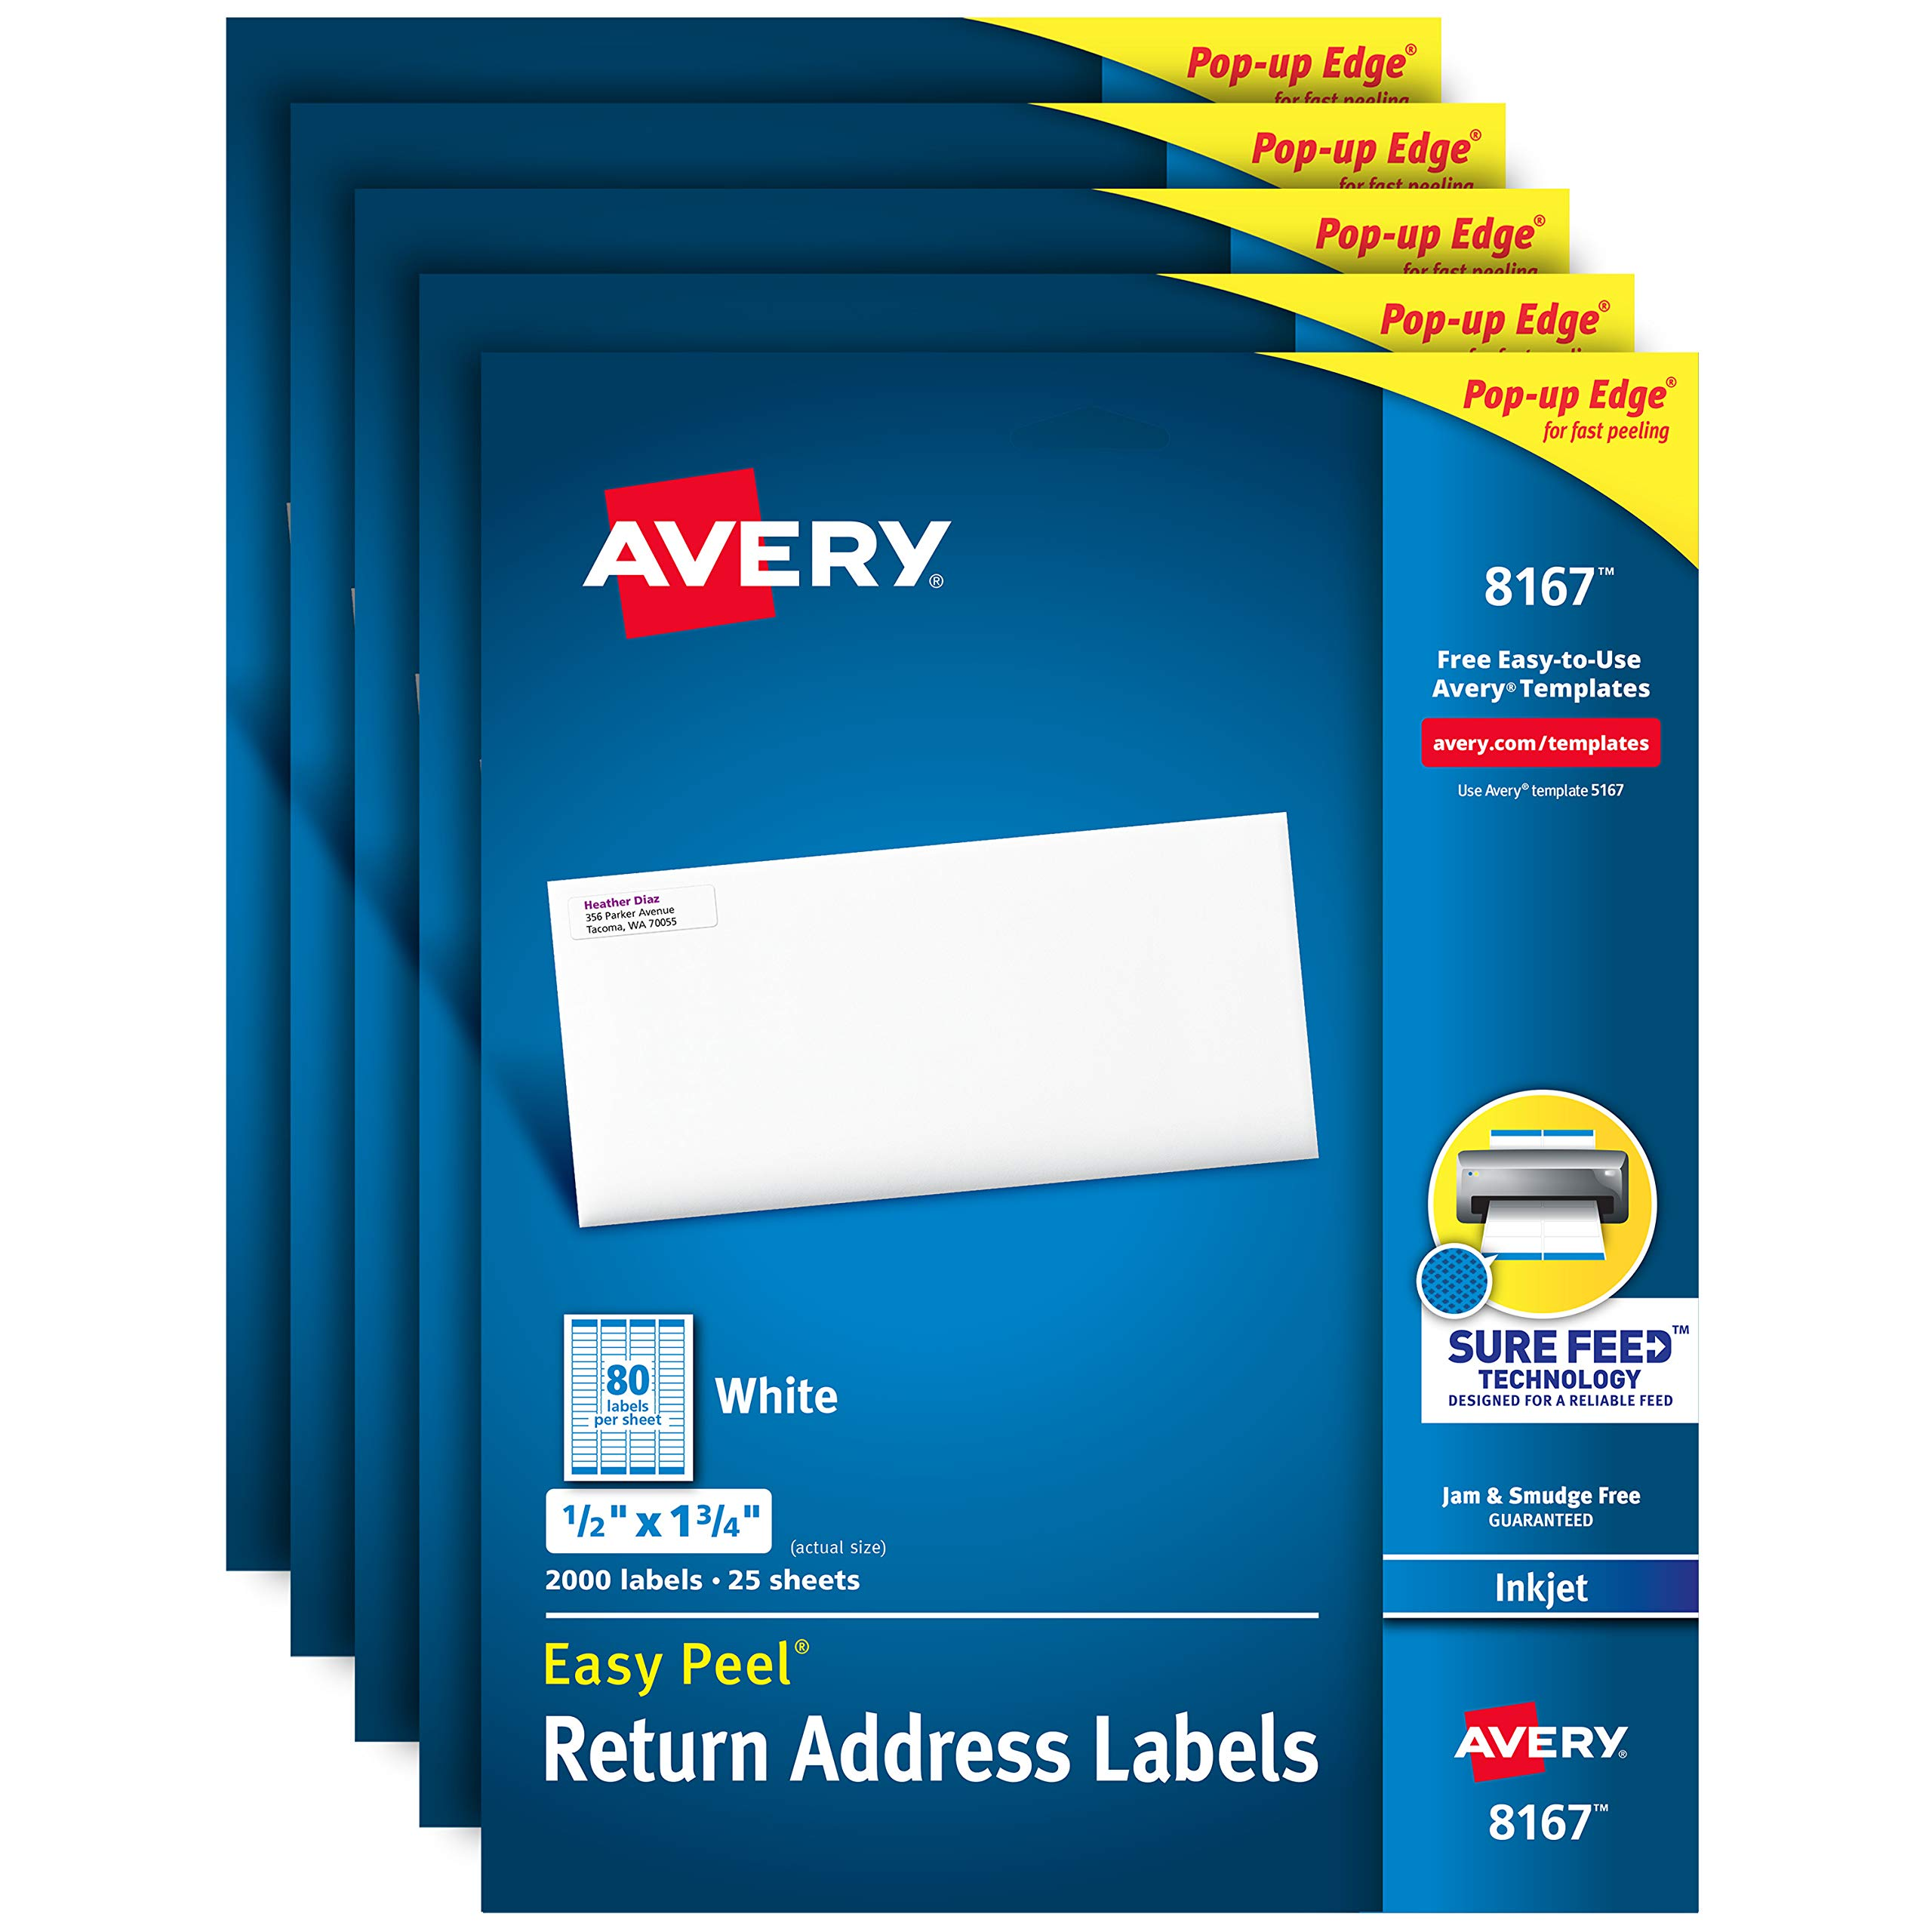 Avery Address Labels with Sure Feed for Inkjet Printers, 0.5'' x 1.75'', 10,000 Labels, Permanent Adhesive (5 Pack 8167) by Avery